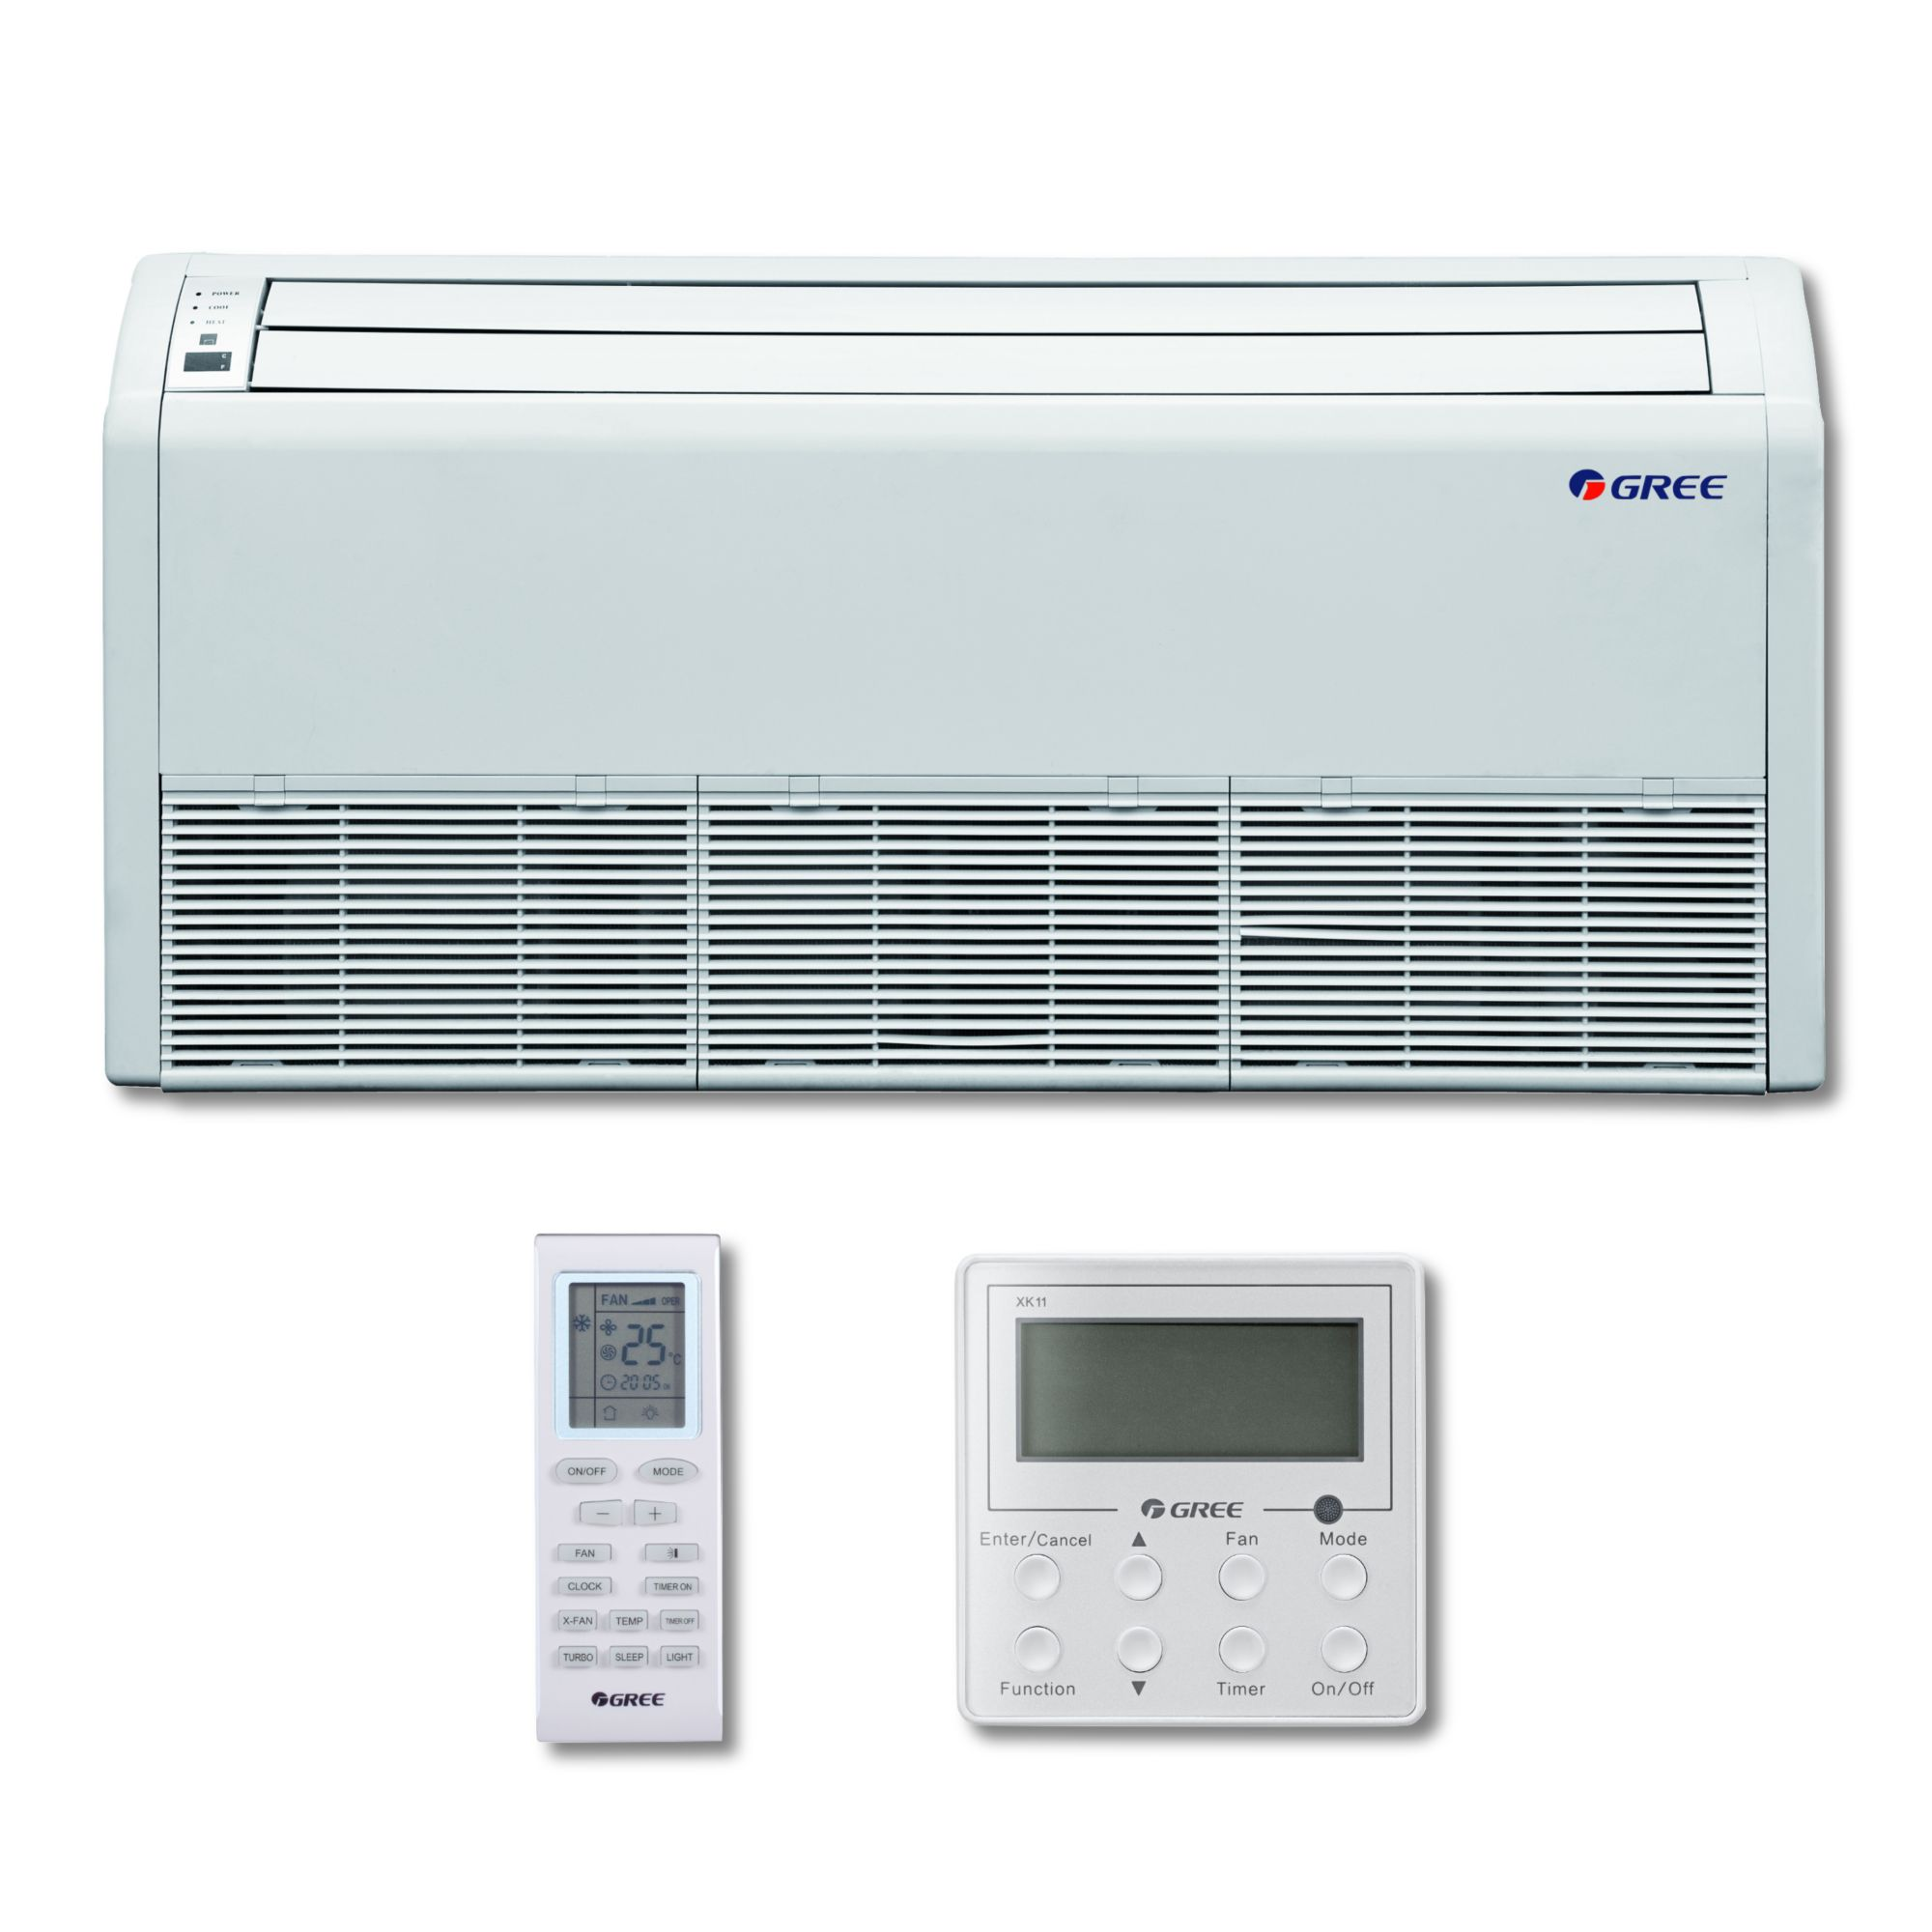 hei gree pump btu ductless multi fit split splits zone normal wall dual mini mount heat article wid en air mitsubishi constrain conditioner systems